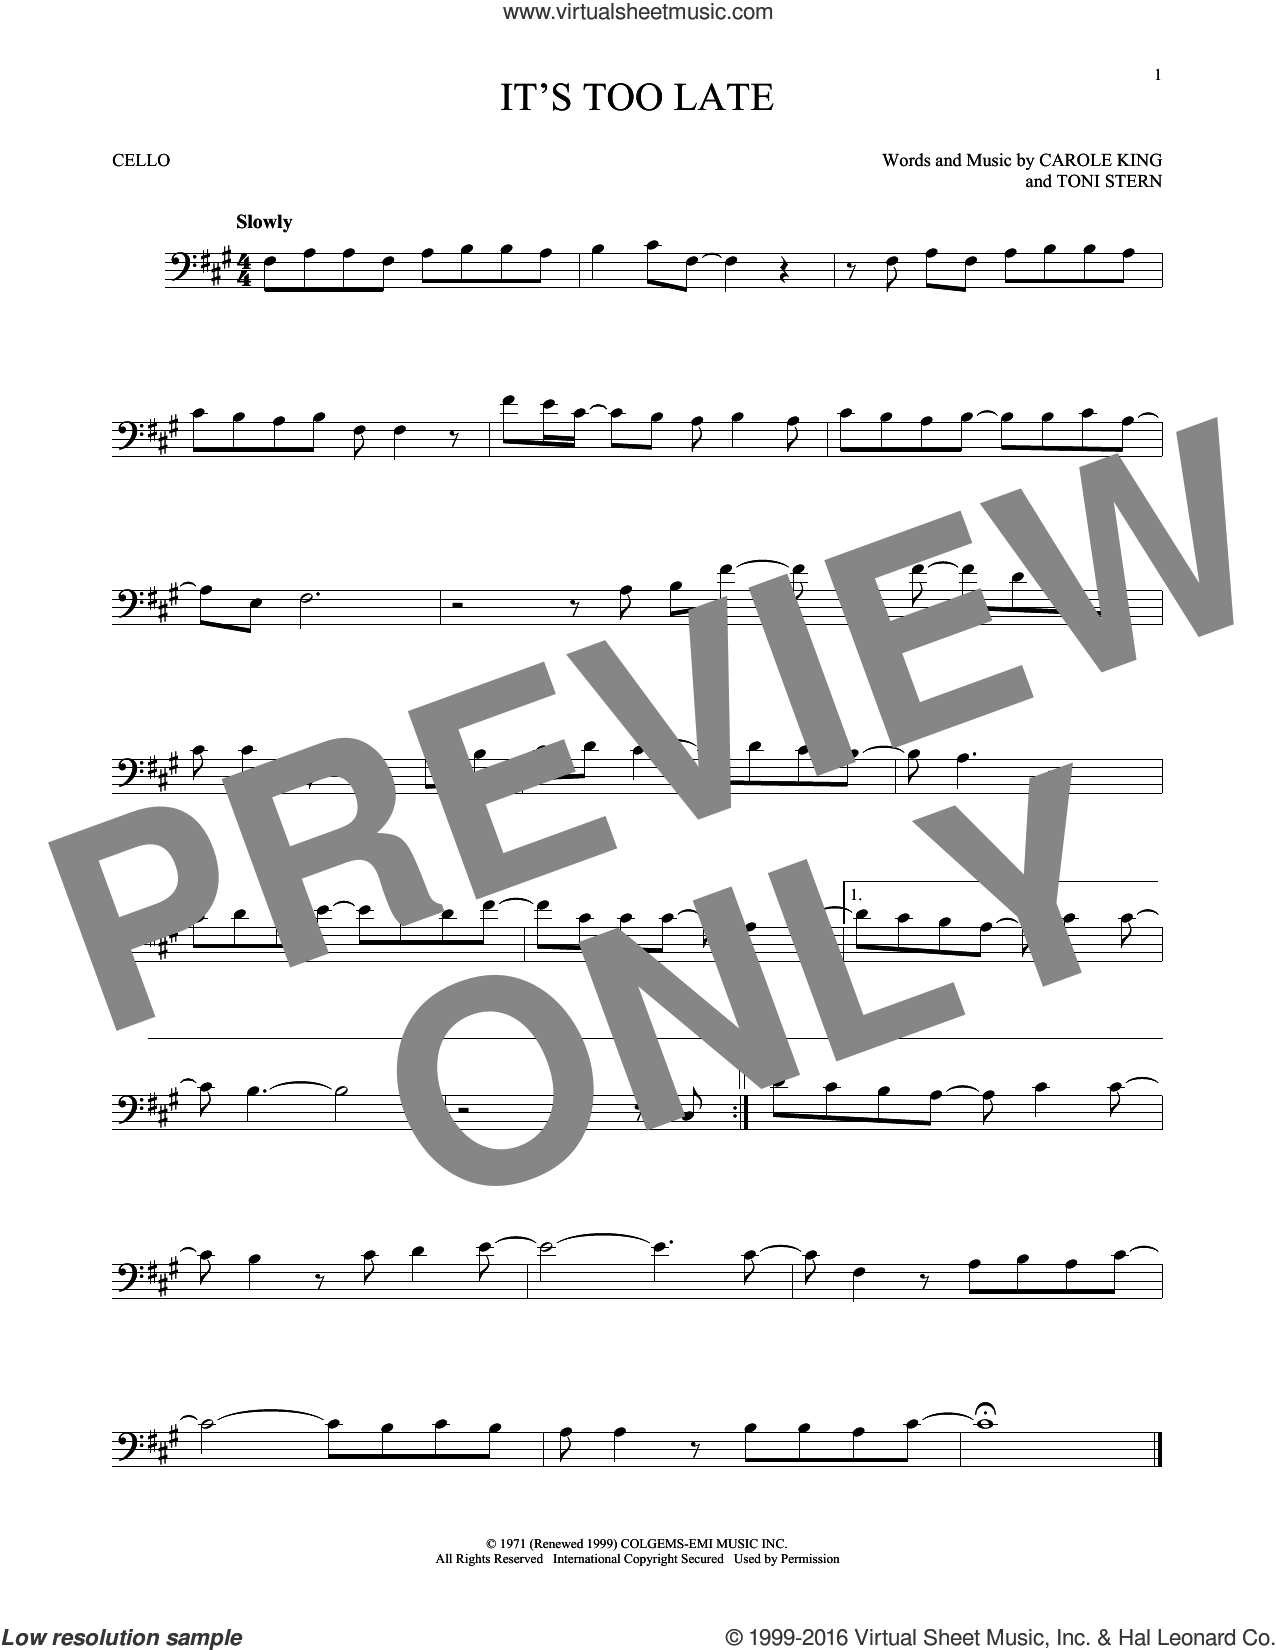 It's Too Late sheet music for cello solo by Carole King, Gloria Estefan and Toni Stern, intermediate skill level